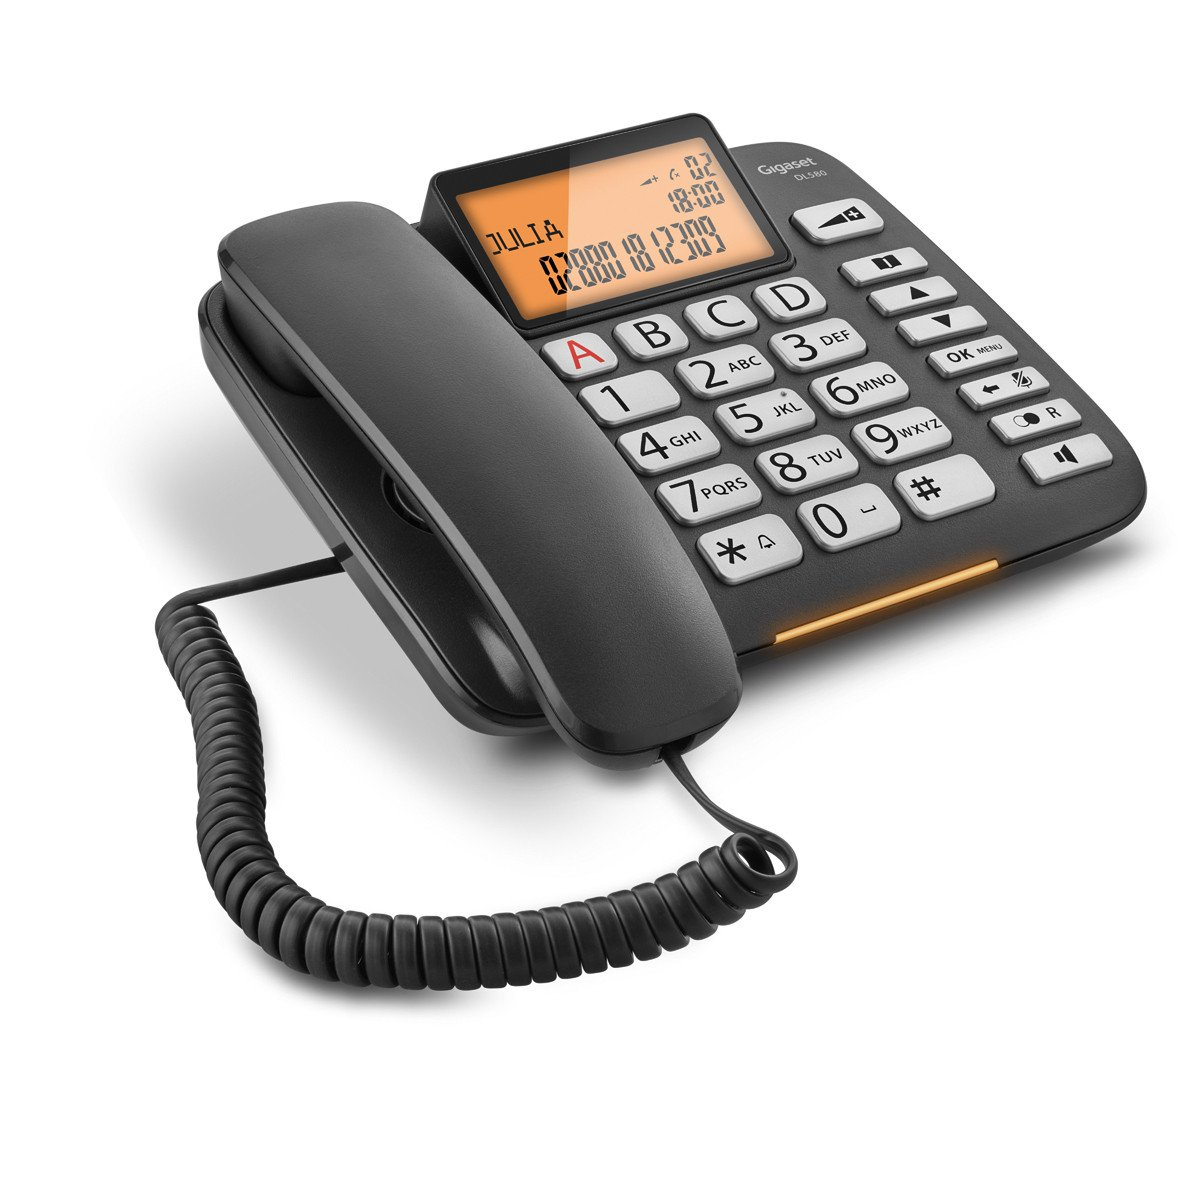 DL580 Corded Phone